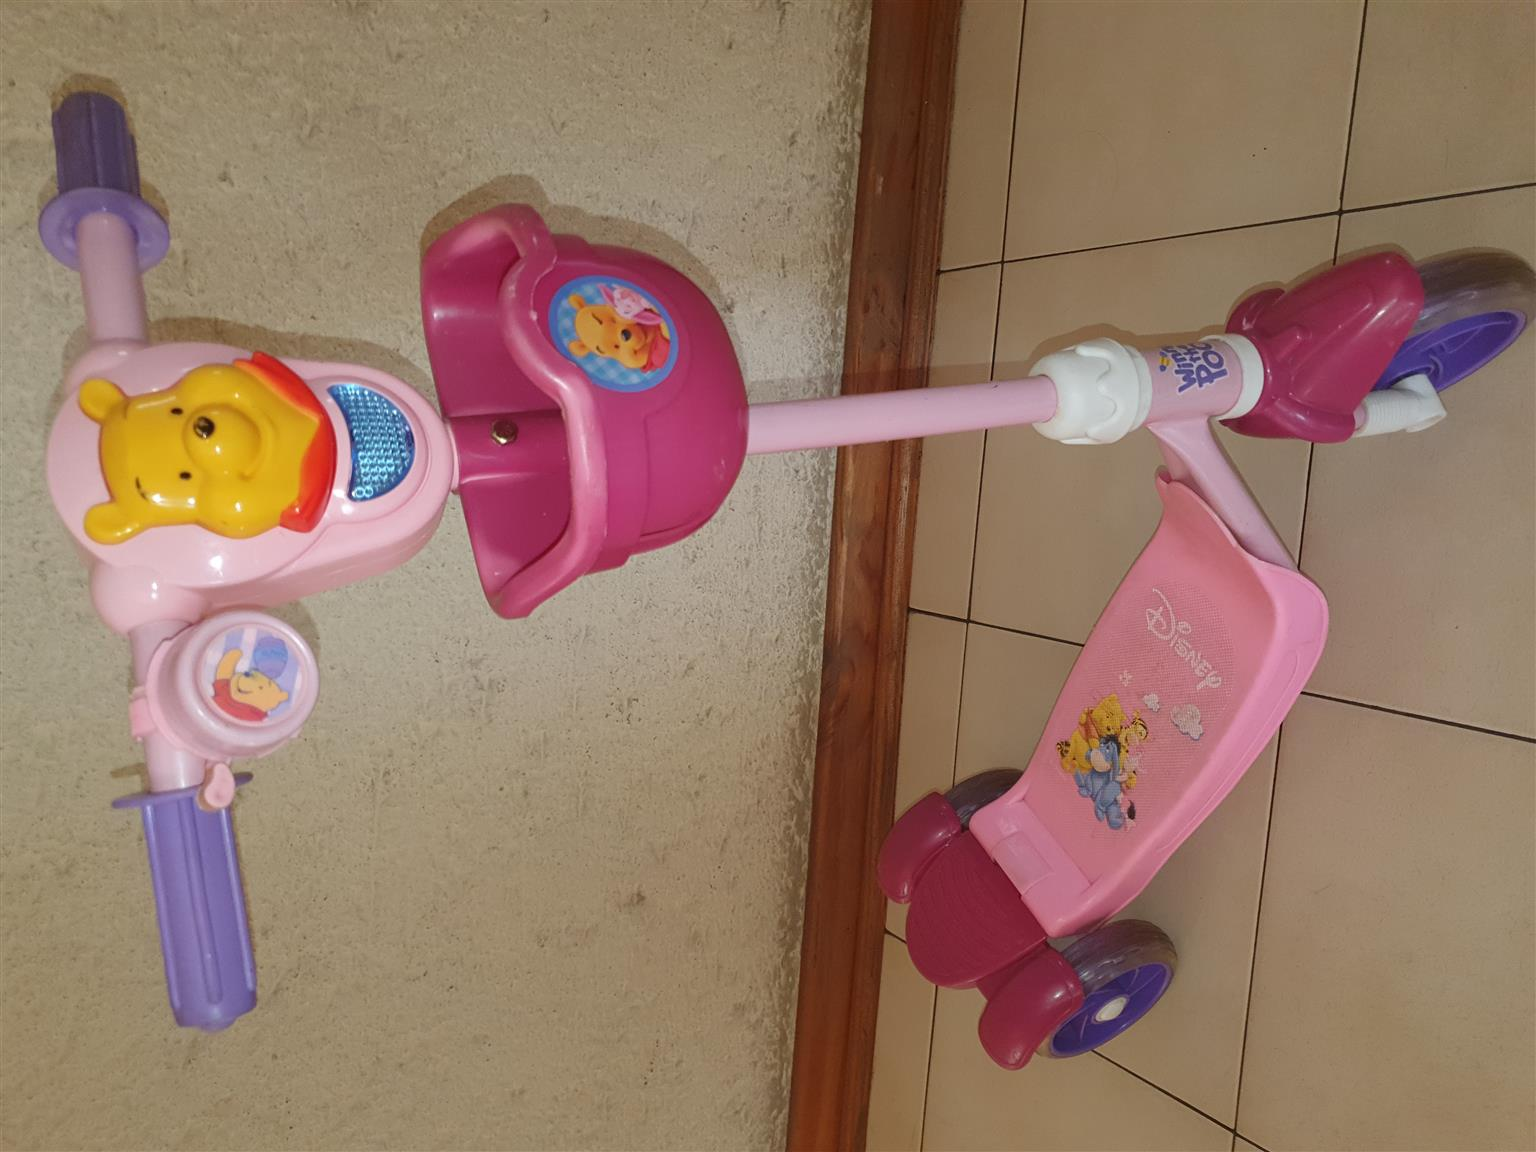 Disney Pooh Bear Scooter with brake and bell. Limited Edition